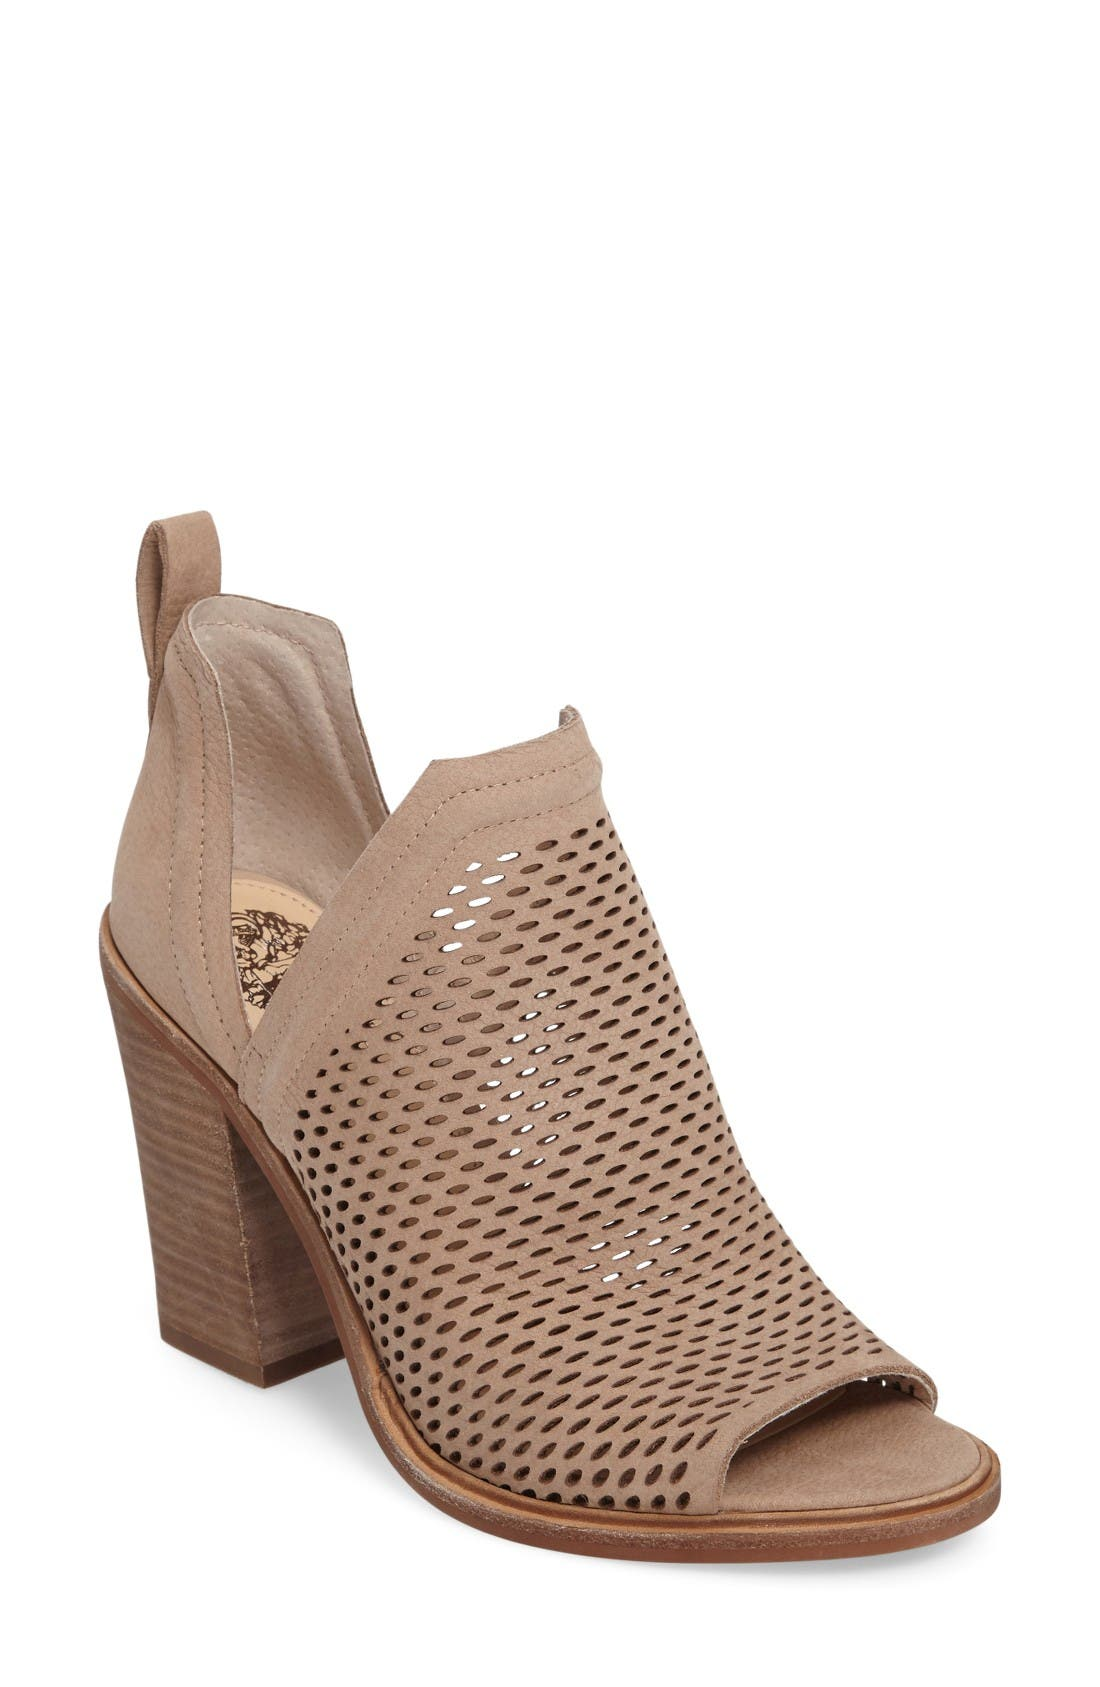 Kensa Peep Toe Bootie,                             Main thumbnail 1, color,                             Almond Beige Nubuck Leather